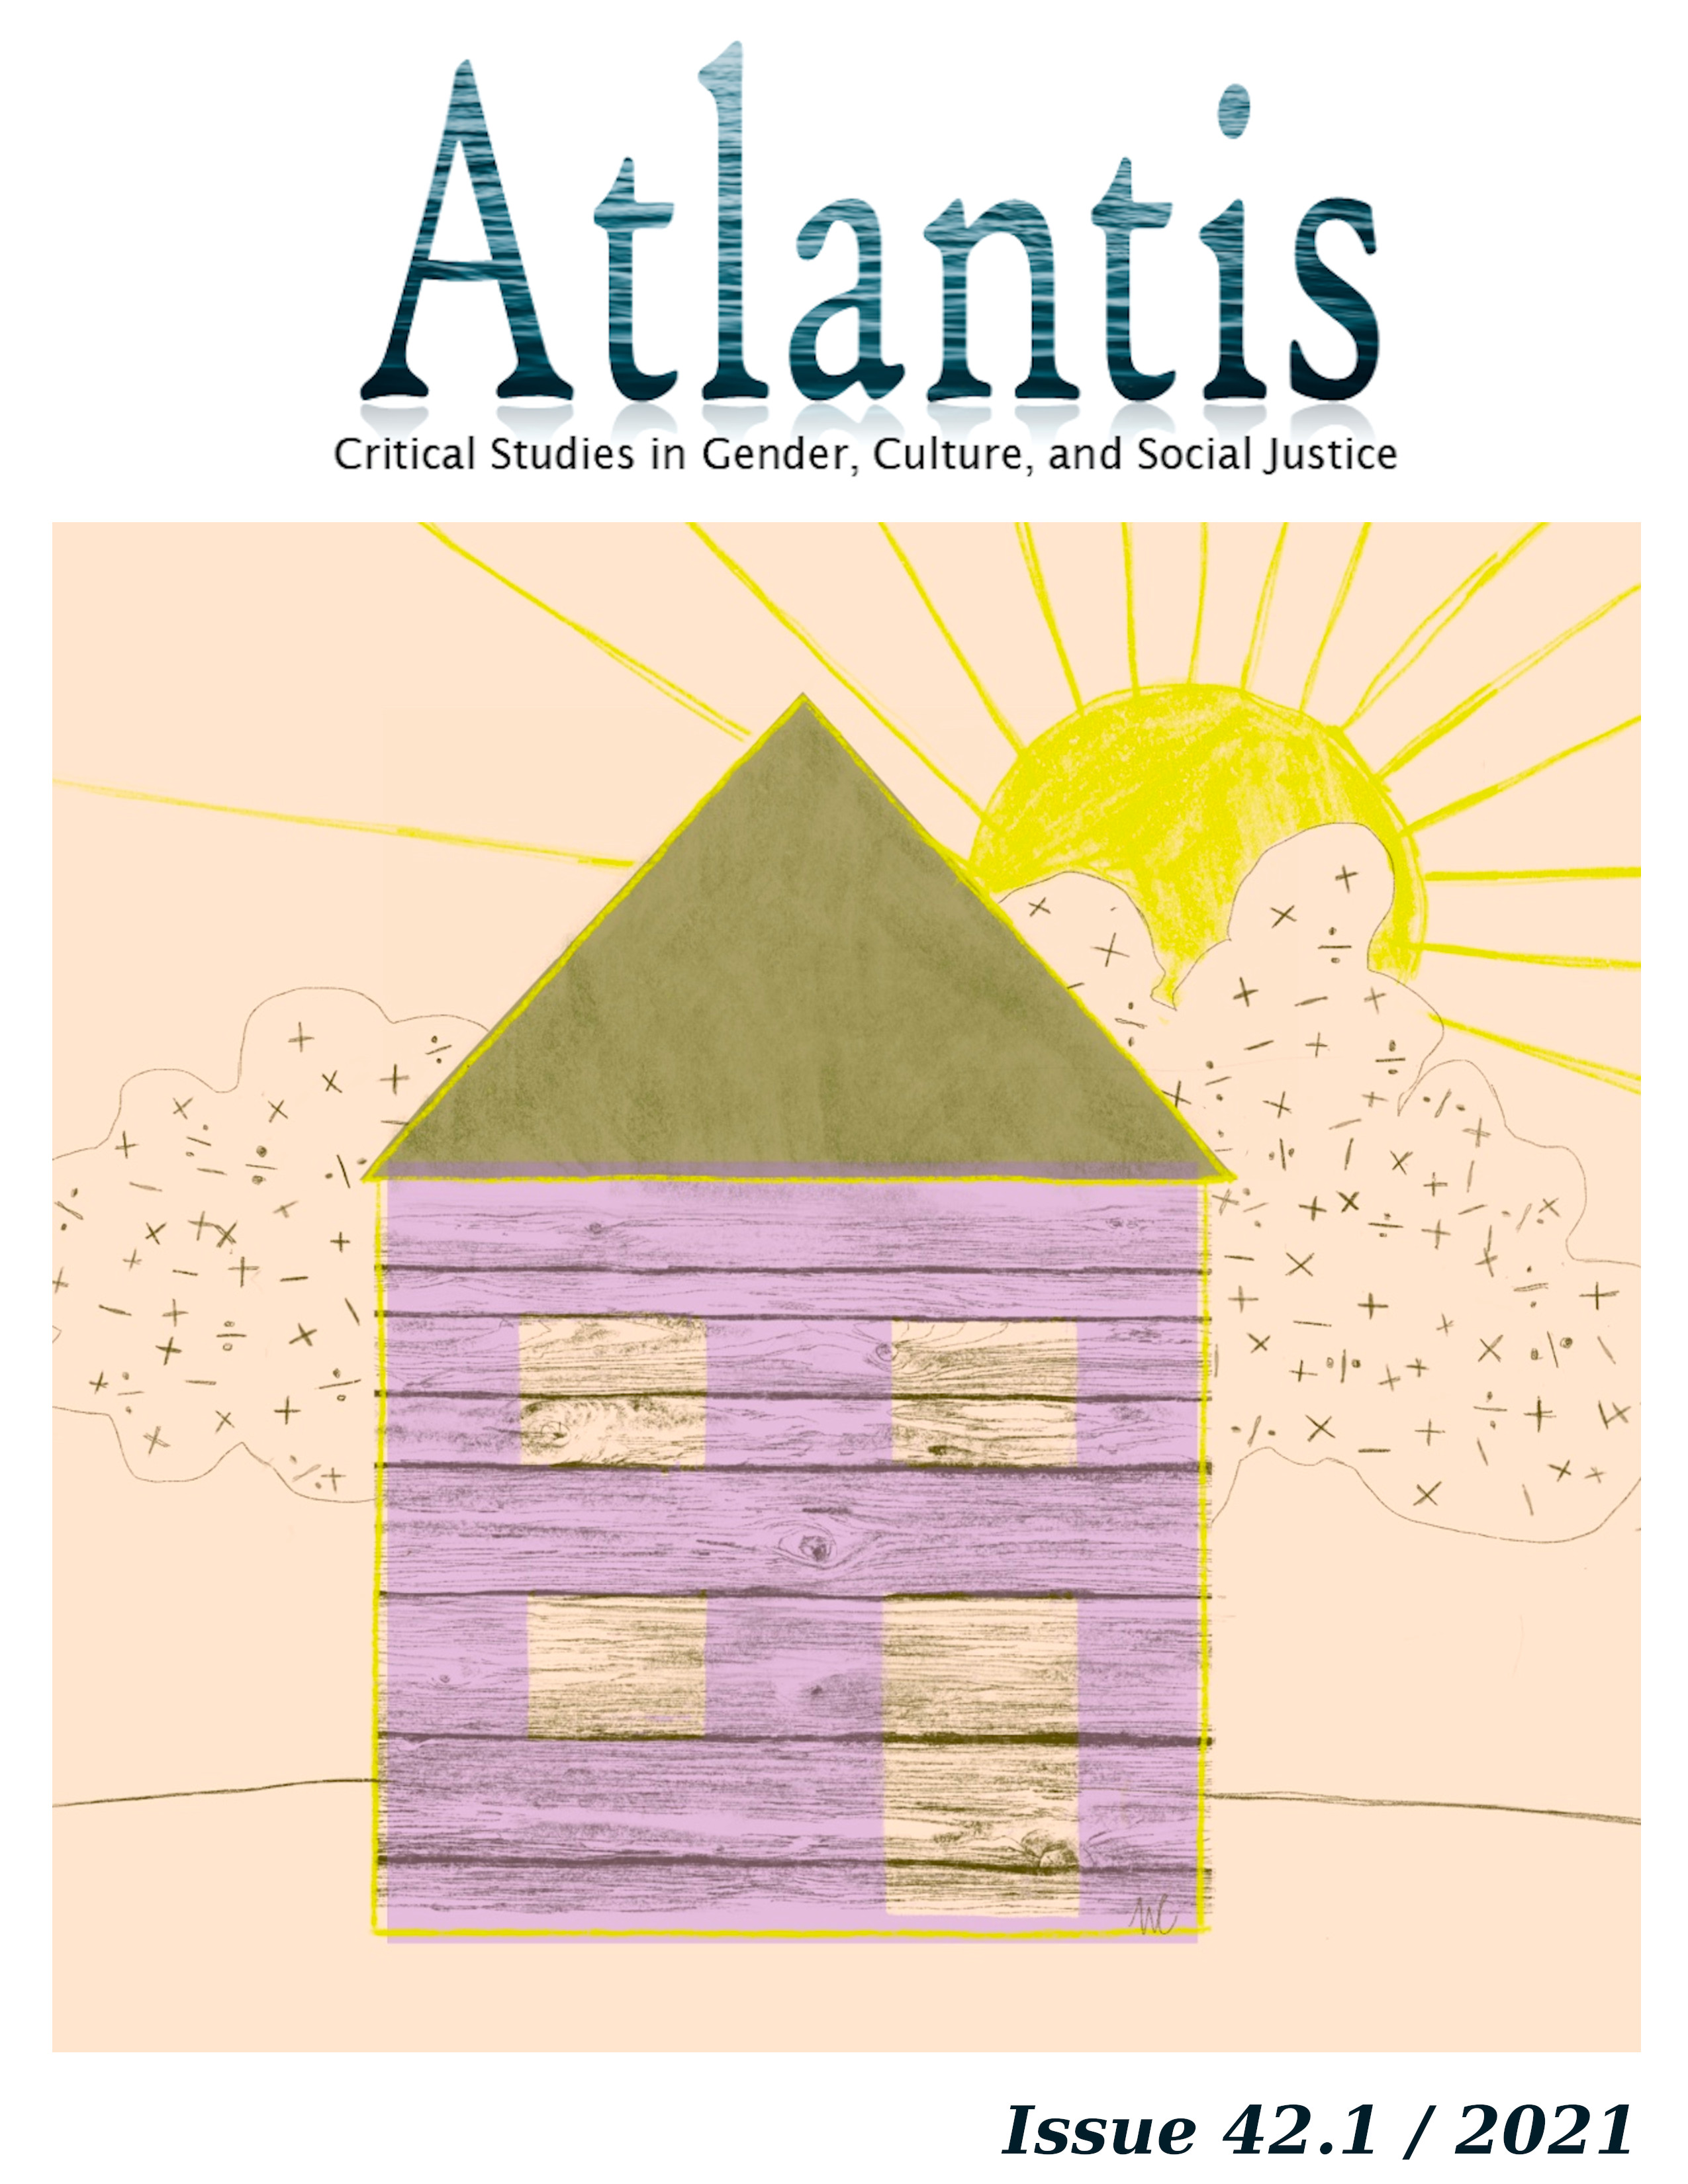 Illustration by Marianne Charlebois showing a wooden house and a cloud with mathemathical signs.